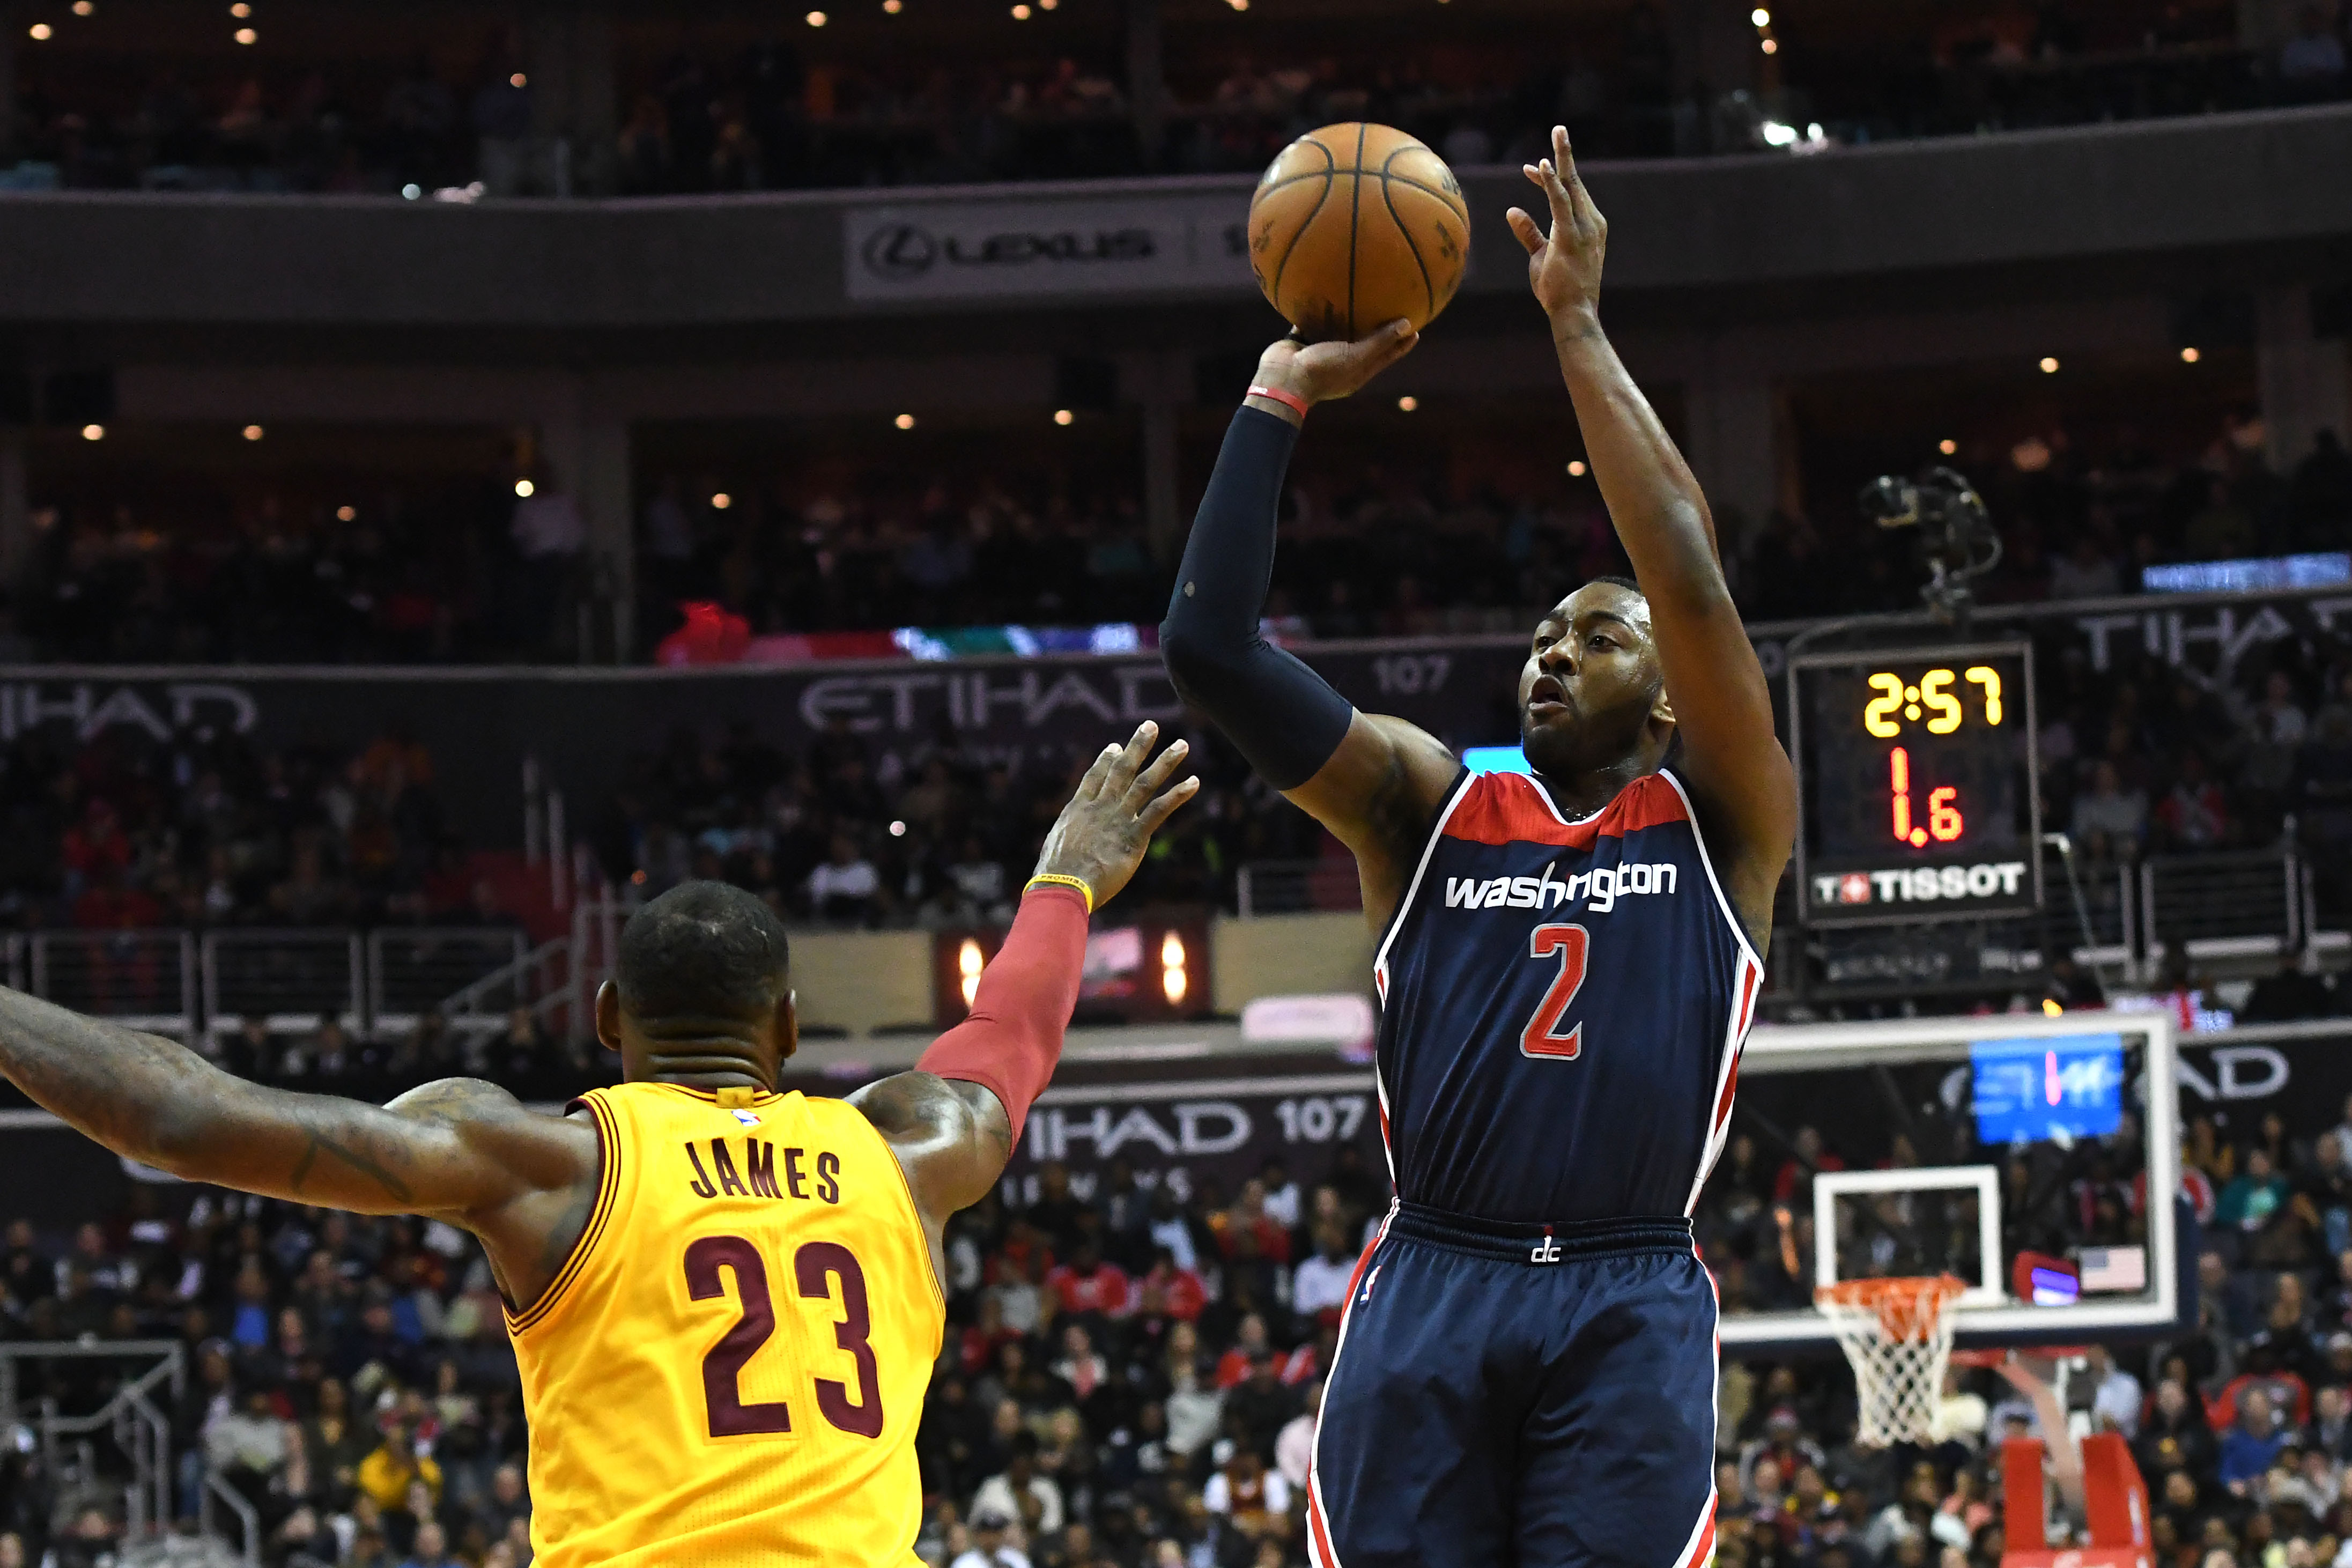 9863508-nba-cleveland-cavaliers-at-washington-wizards